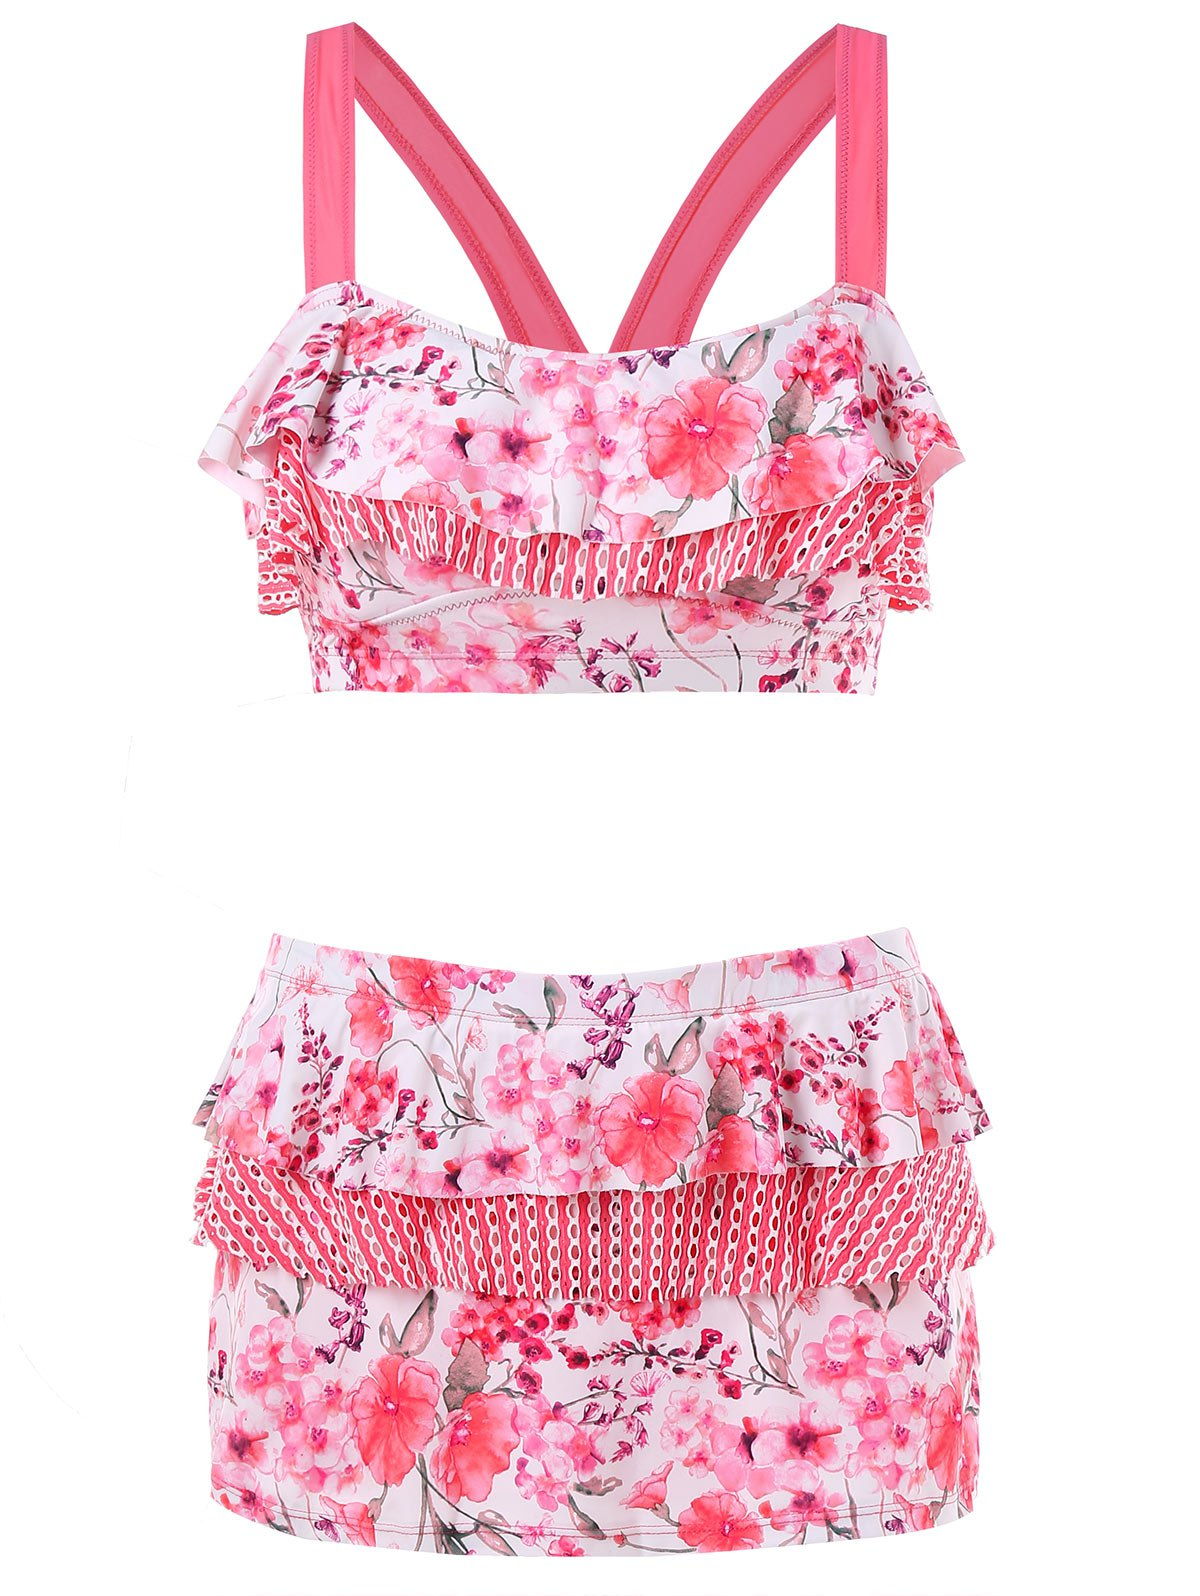 Chic Floral Print Layered Bikini Set